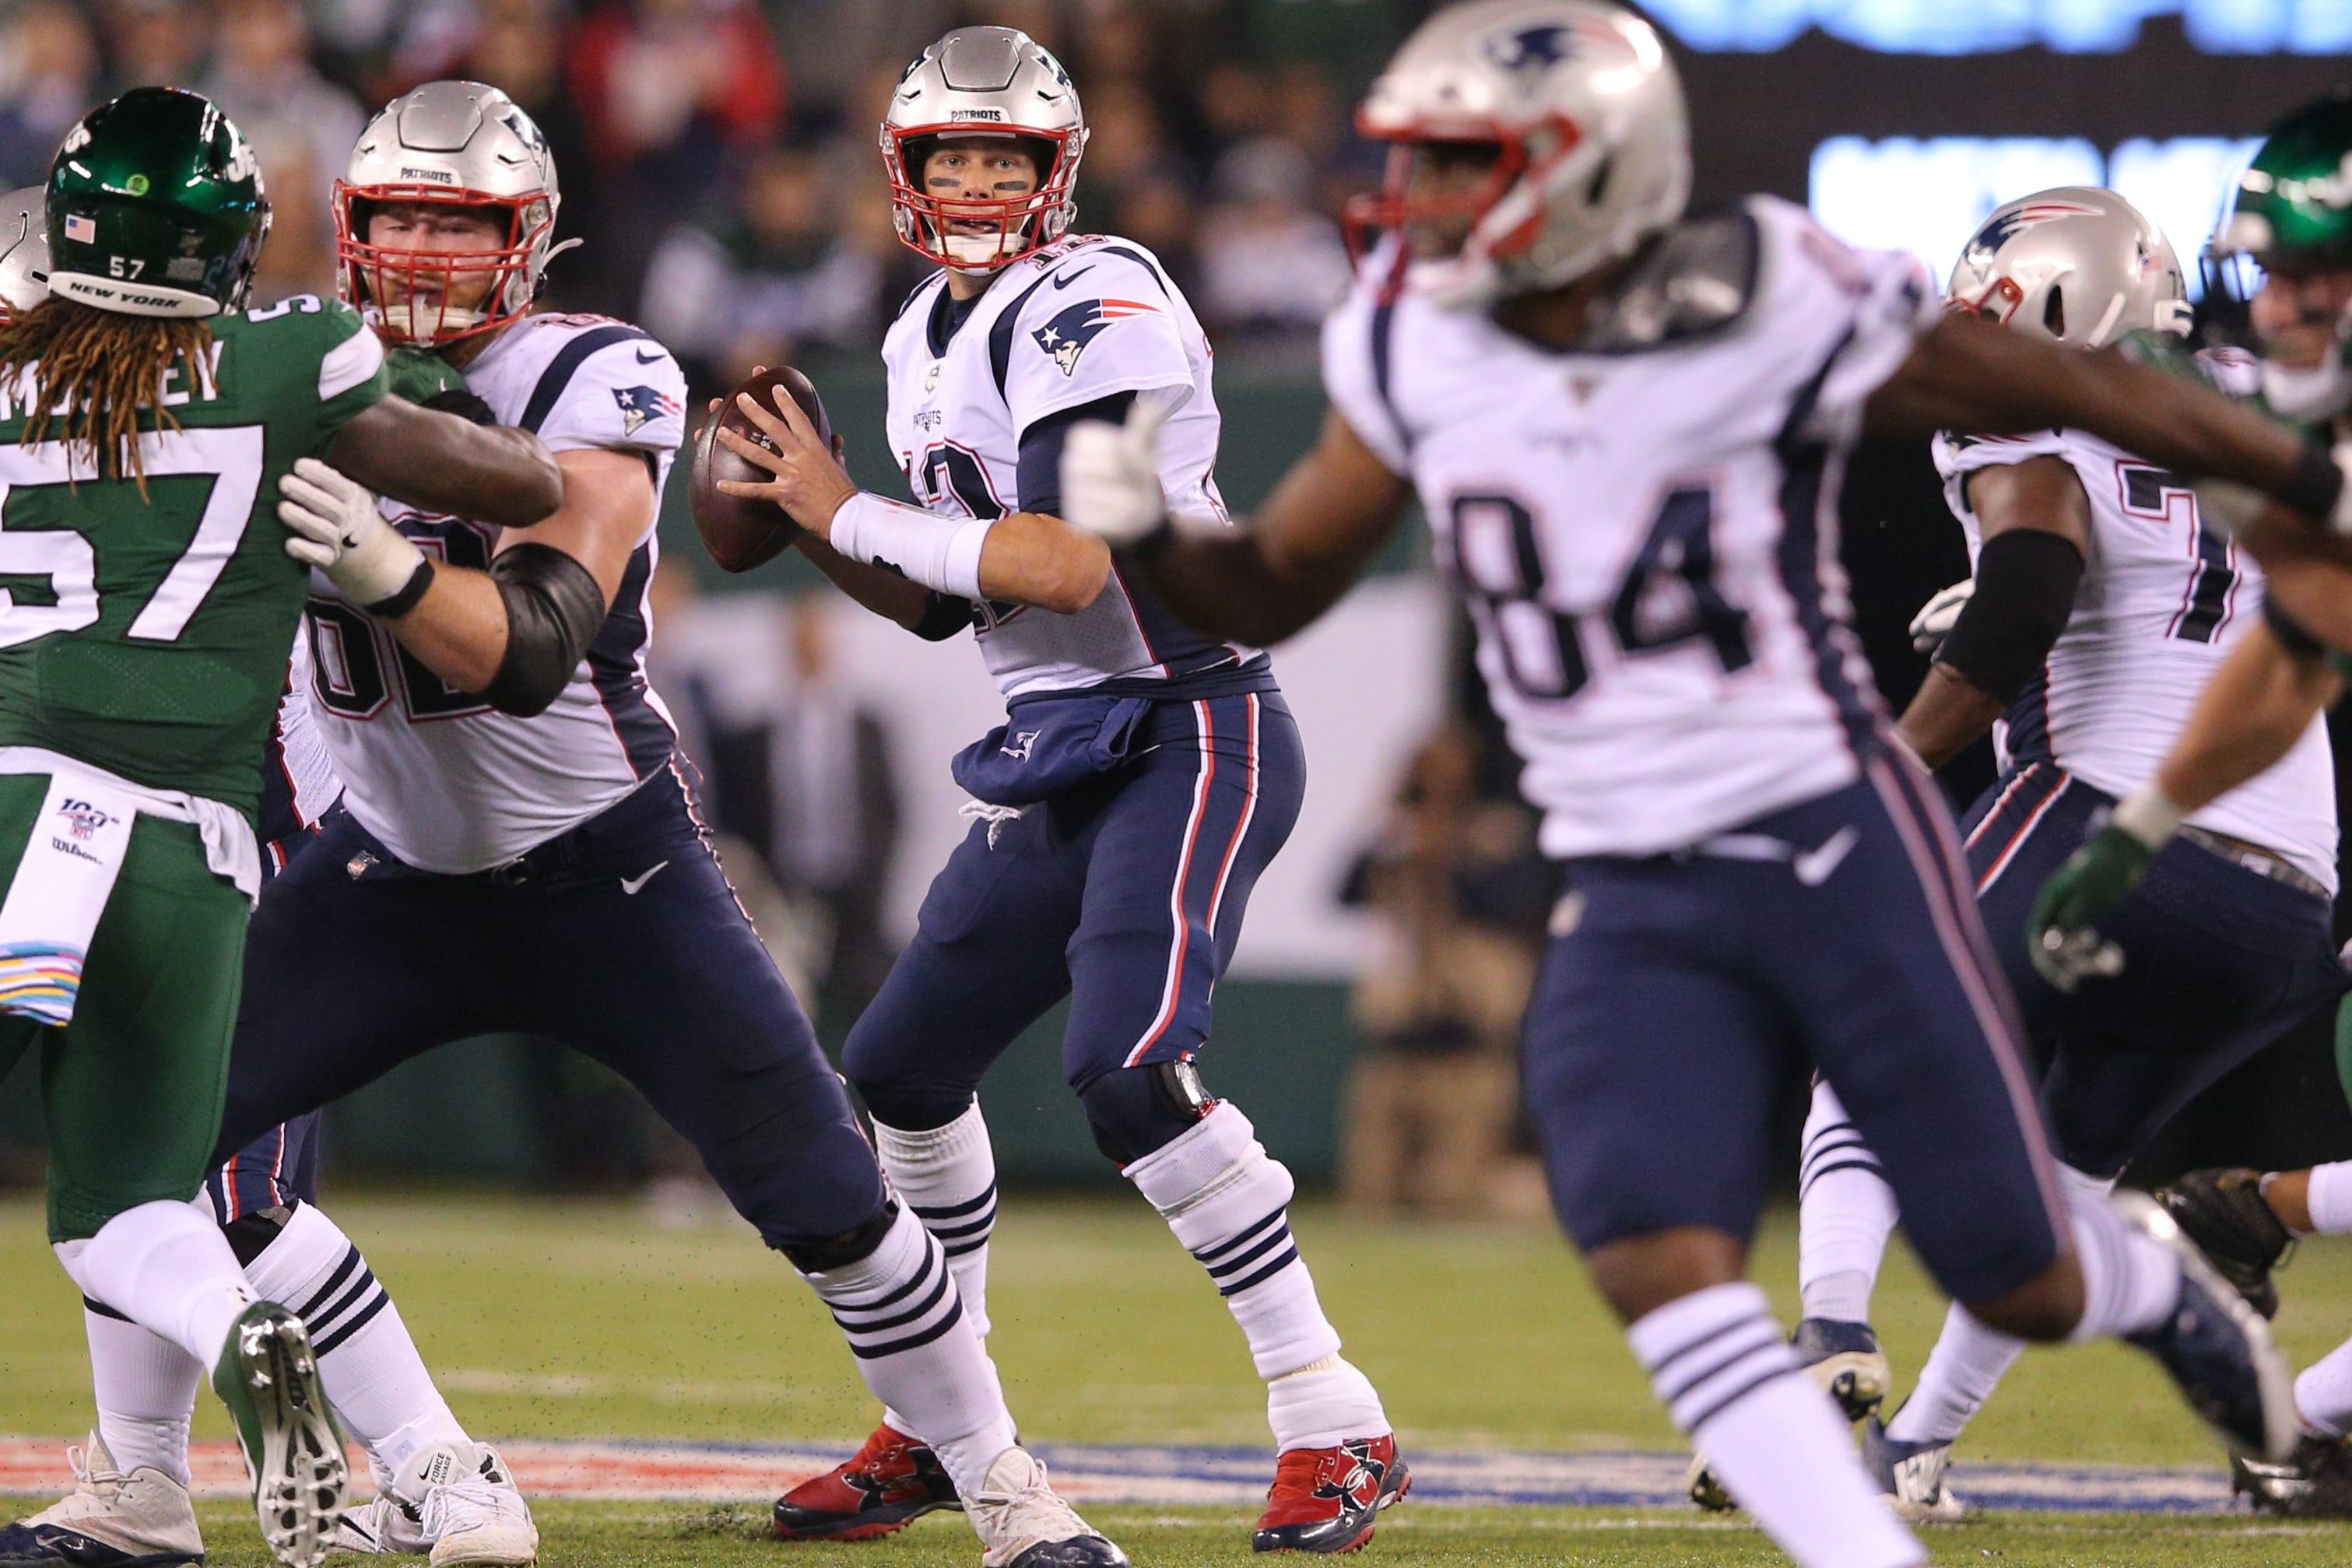 Sam Darnold turns ball over five times as New England Patriots shut out New York Jets